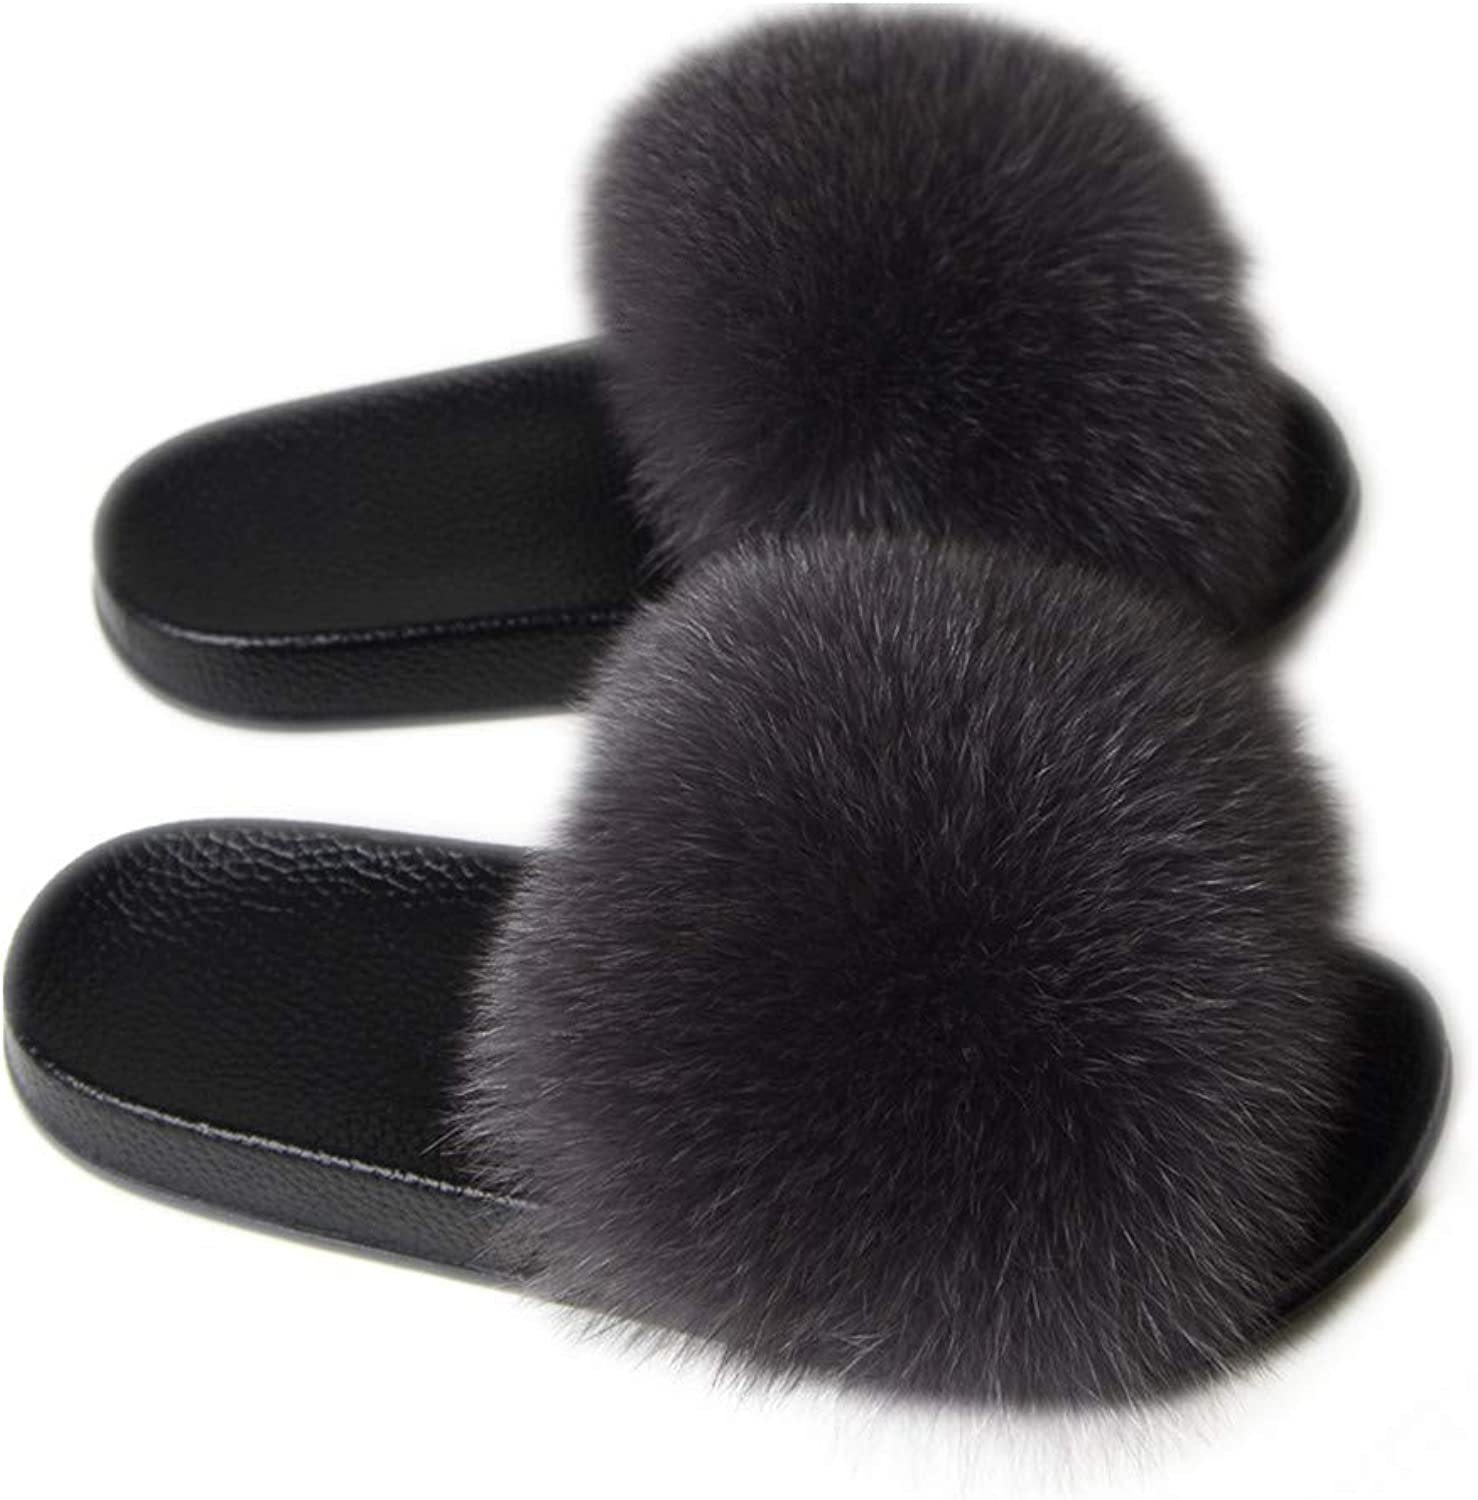 LSWJS Open Toe Real Fur Slippers Women Slides Flat shoes Fur Feather Sandals